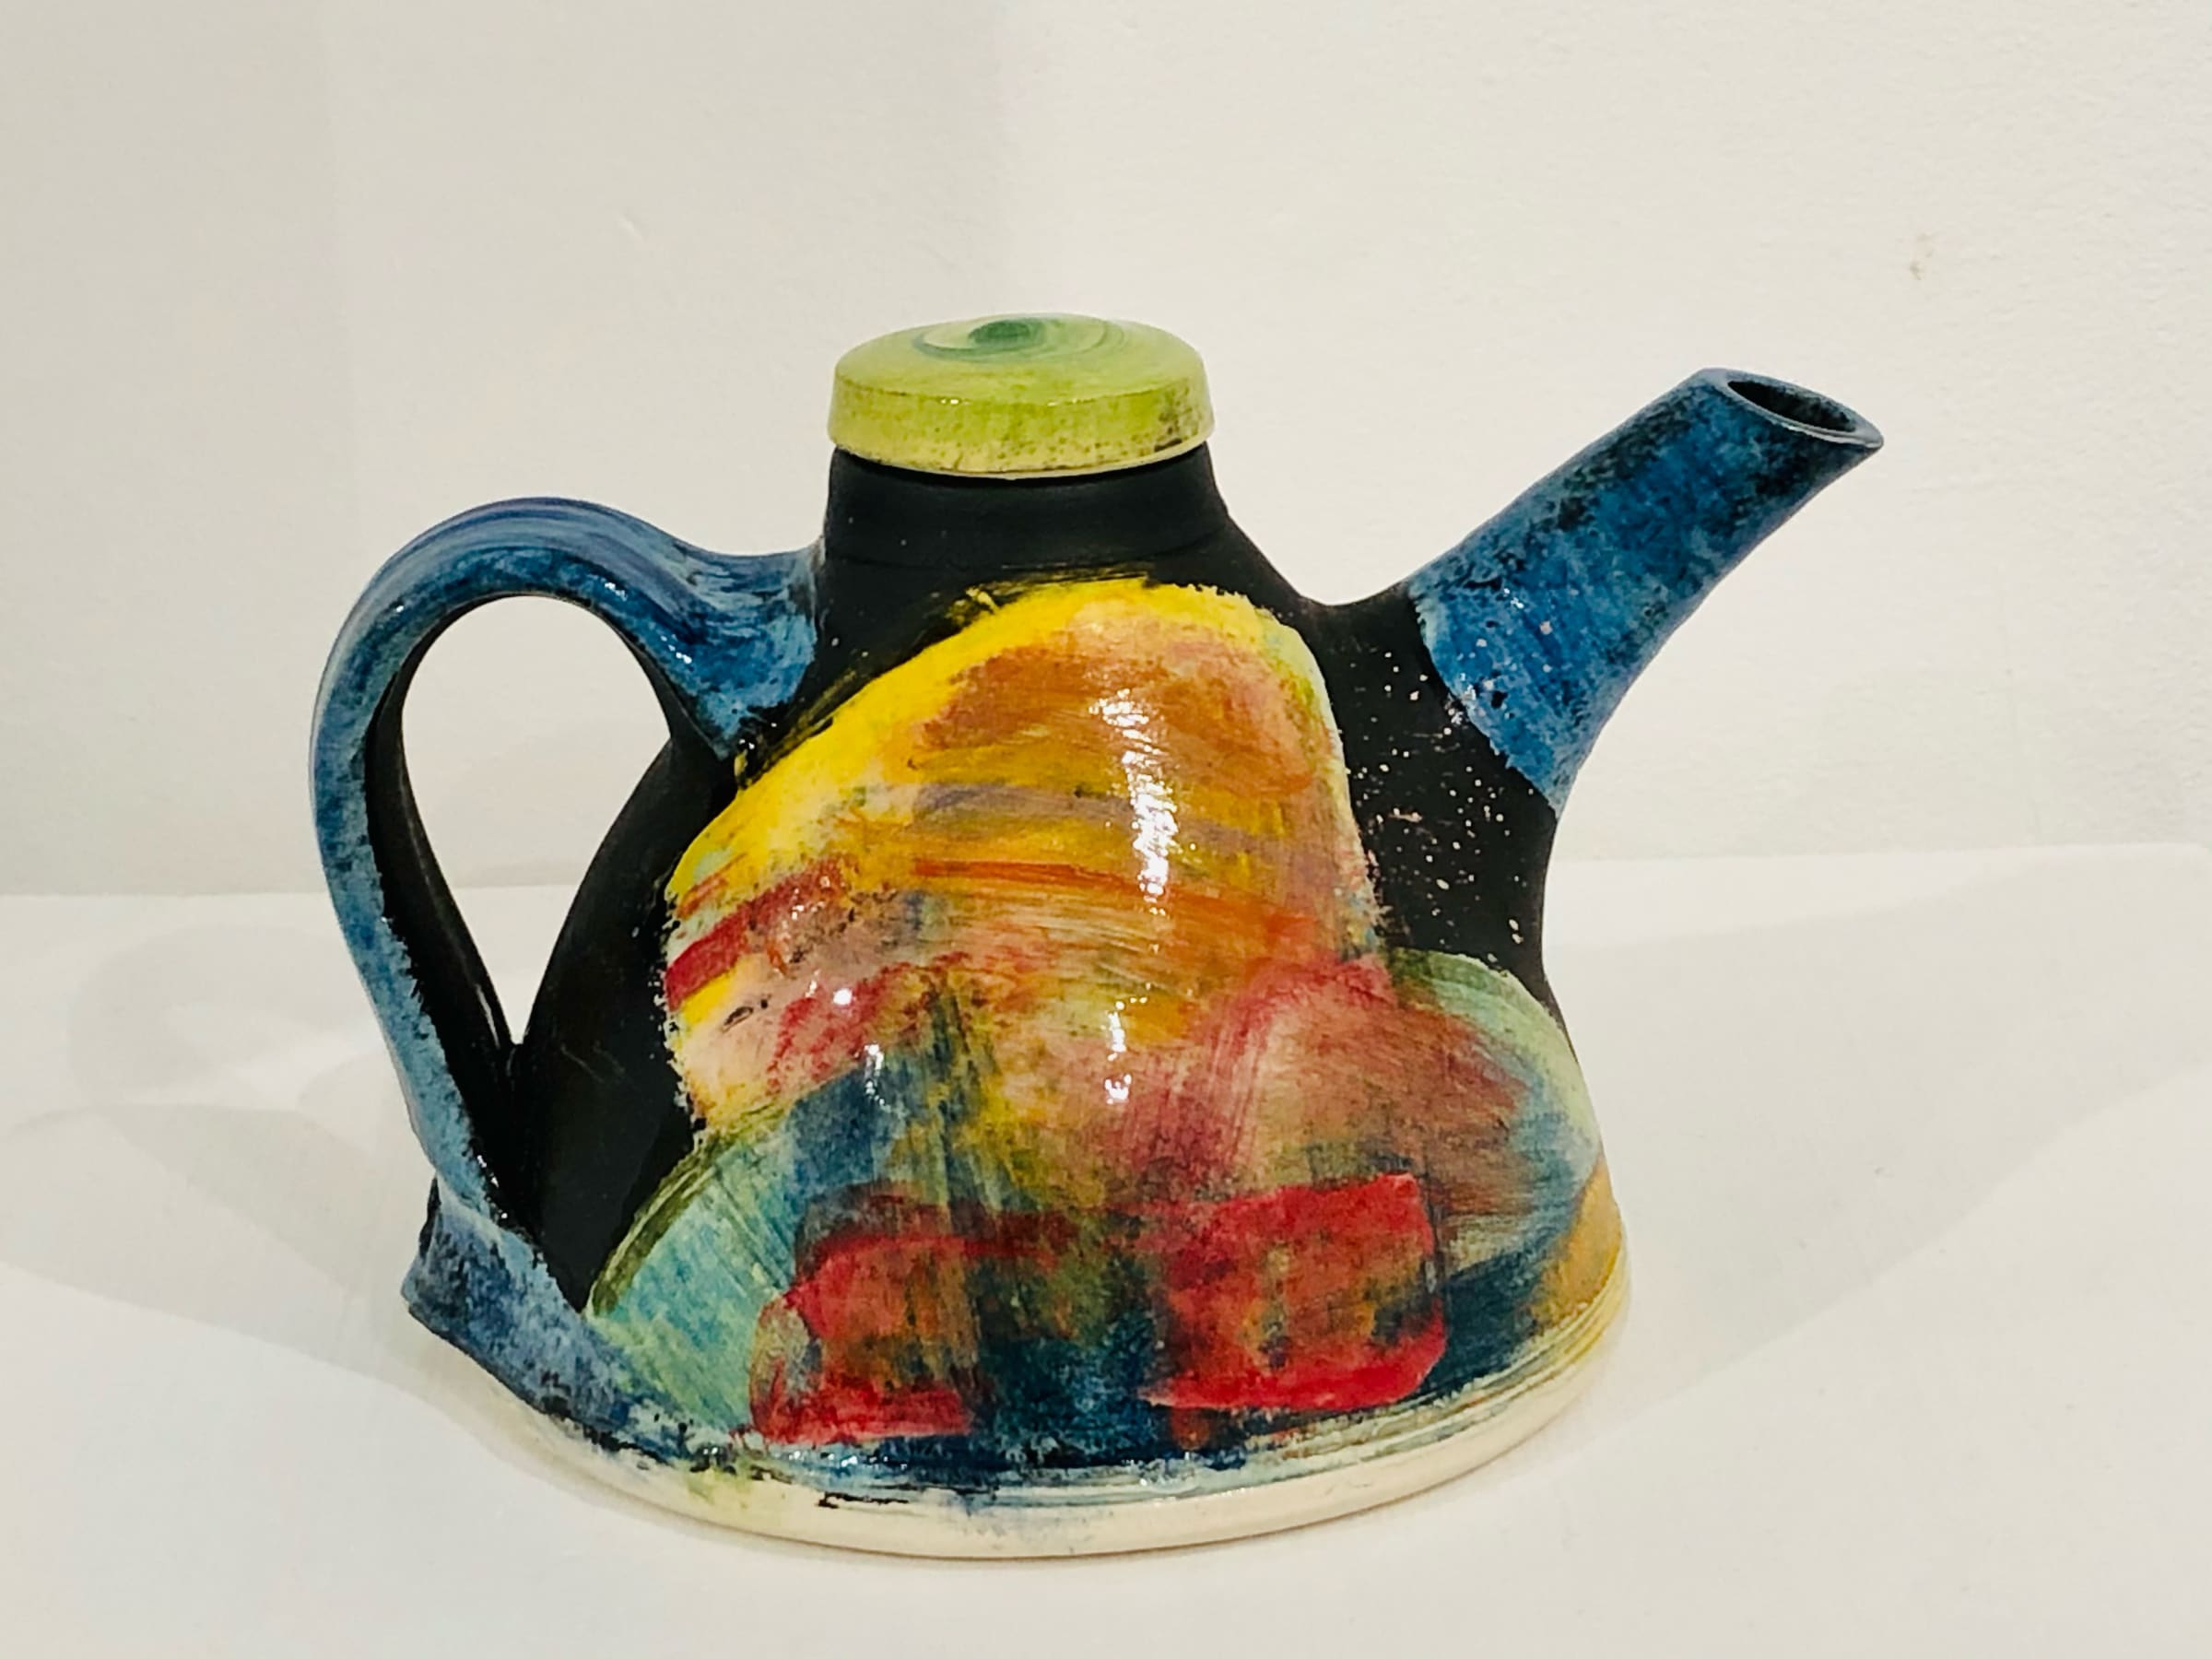 """<span class=""""link fancybox-details-link""""><a href=""""/artists/100-john-pollex/works/7417-john-pollex-teapot-2020/"""">View Detail Page</a></span><div class=""""artist""""><strong>John Pollex</strong></div> b. 1941 <div class=""""title""""><em>Teapot</em>, 2020</div> <div class=""""signed_and_dated"""">impressed with the artist's seal mark 'JP'</div> <div class=""""medium"""">white earthenware decorated with coloured slips</div><div class=""""price"""">£220.00</div><div class=""""copyright_line"""">£22 x 10 month 0% APR</div>"""